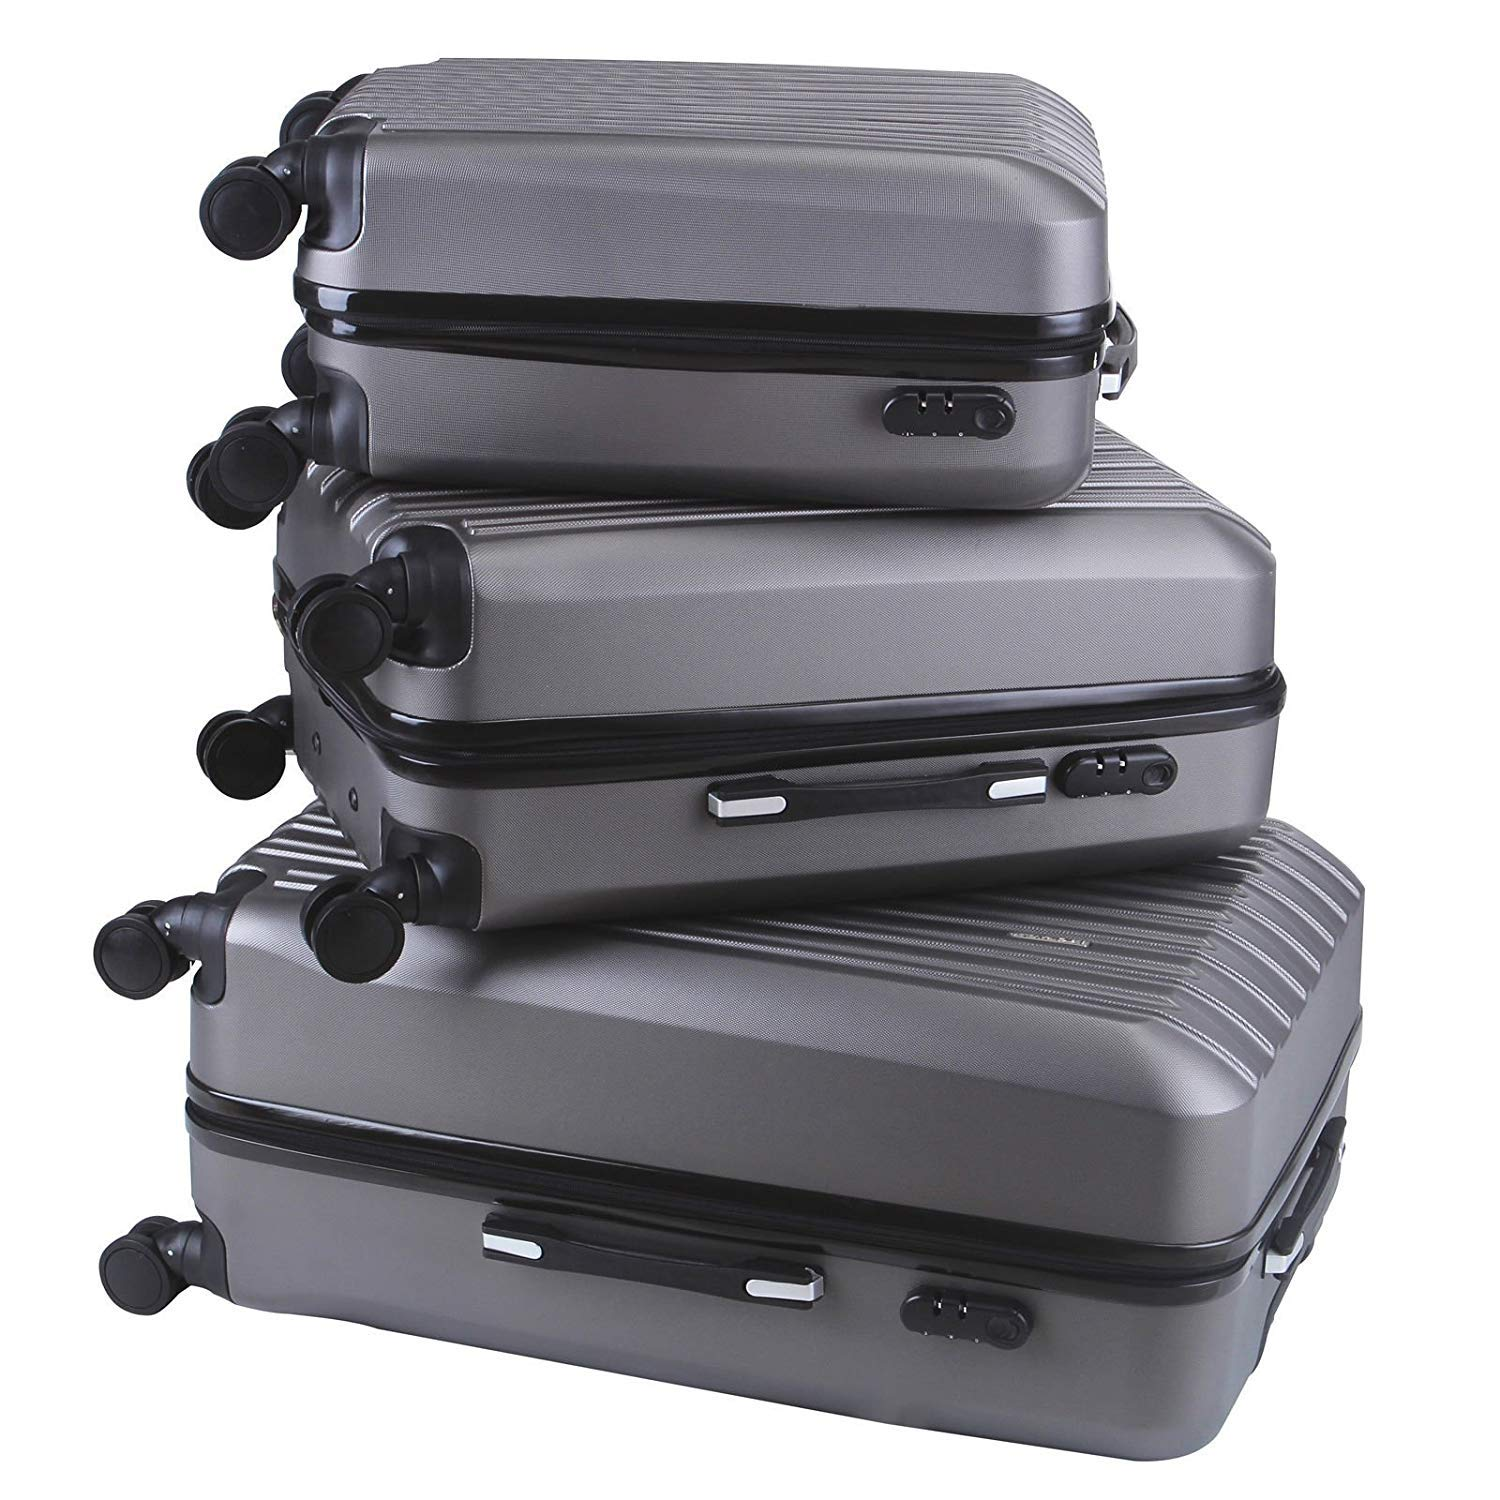 Dark Gray Directsale92 New 3x Travel Spinner Luggage Set Bag ABS Trolley Carry On Suitcase w//TSA Gray